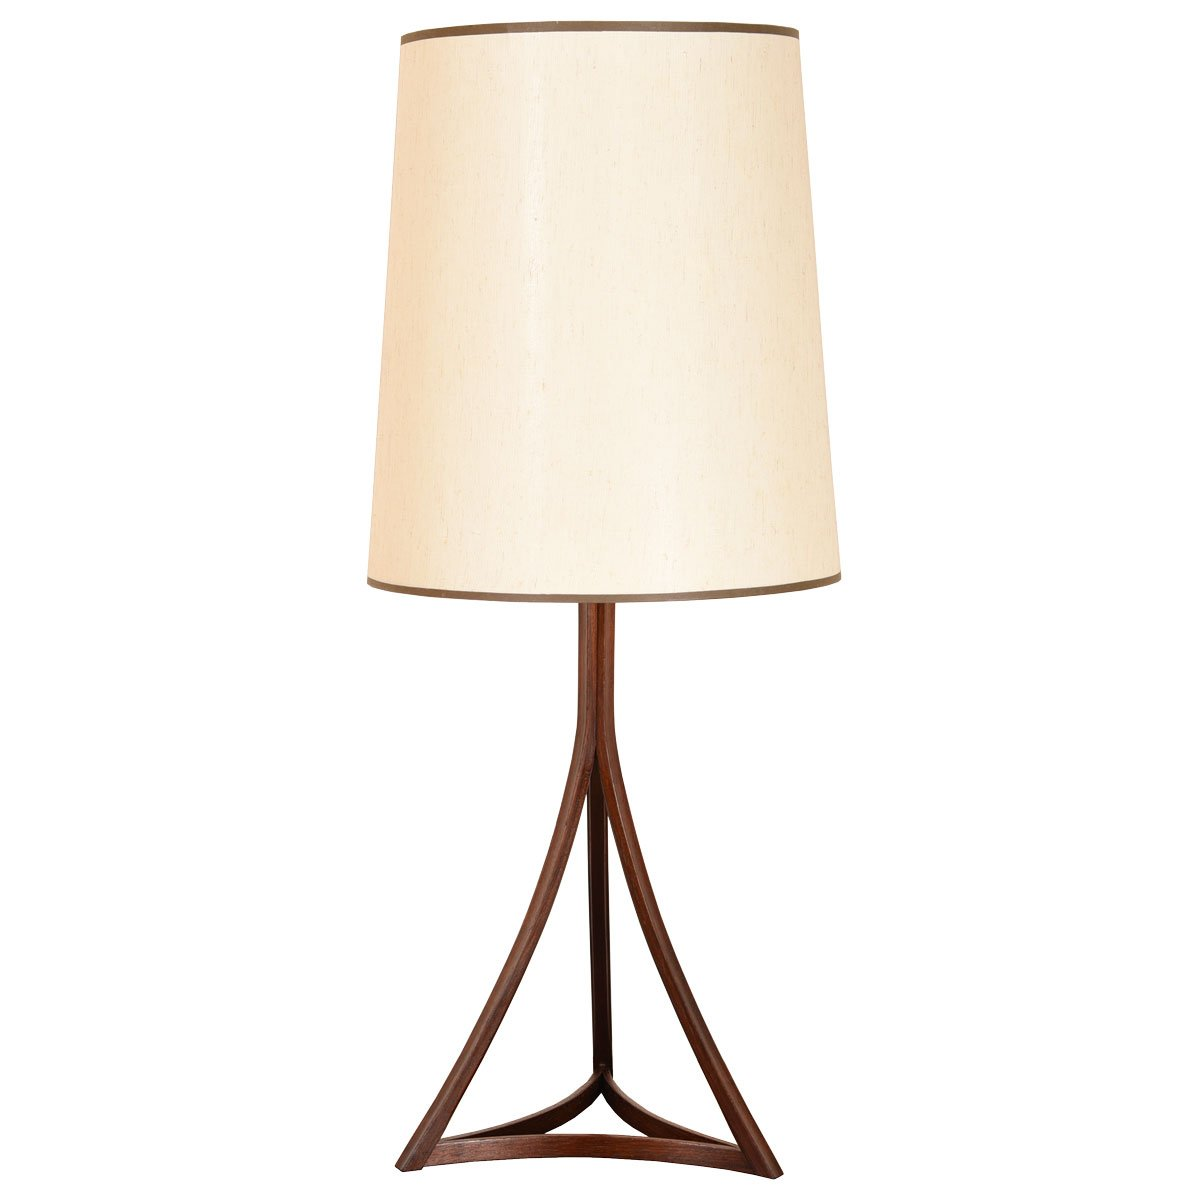 Danish Modern Rosewood Frame Table Lamp